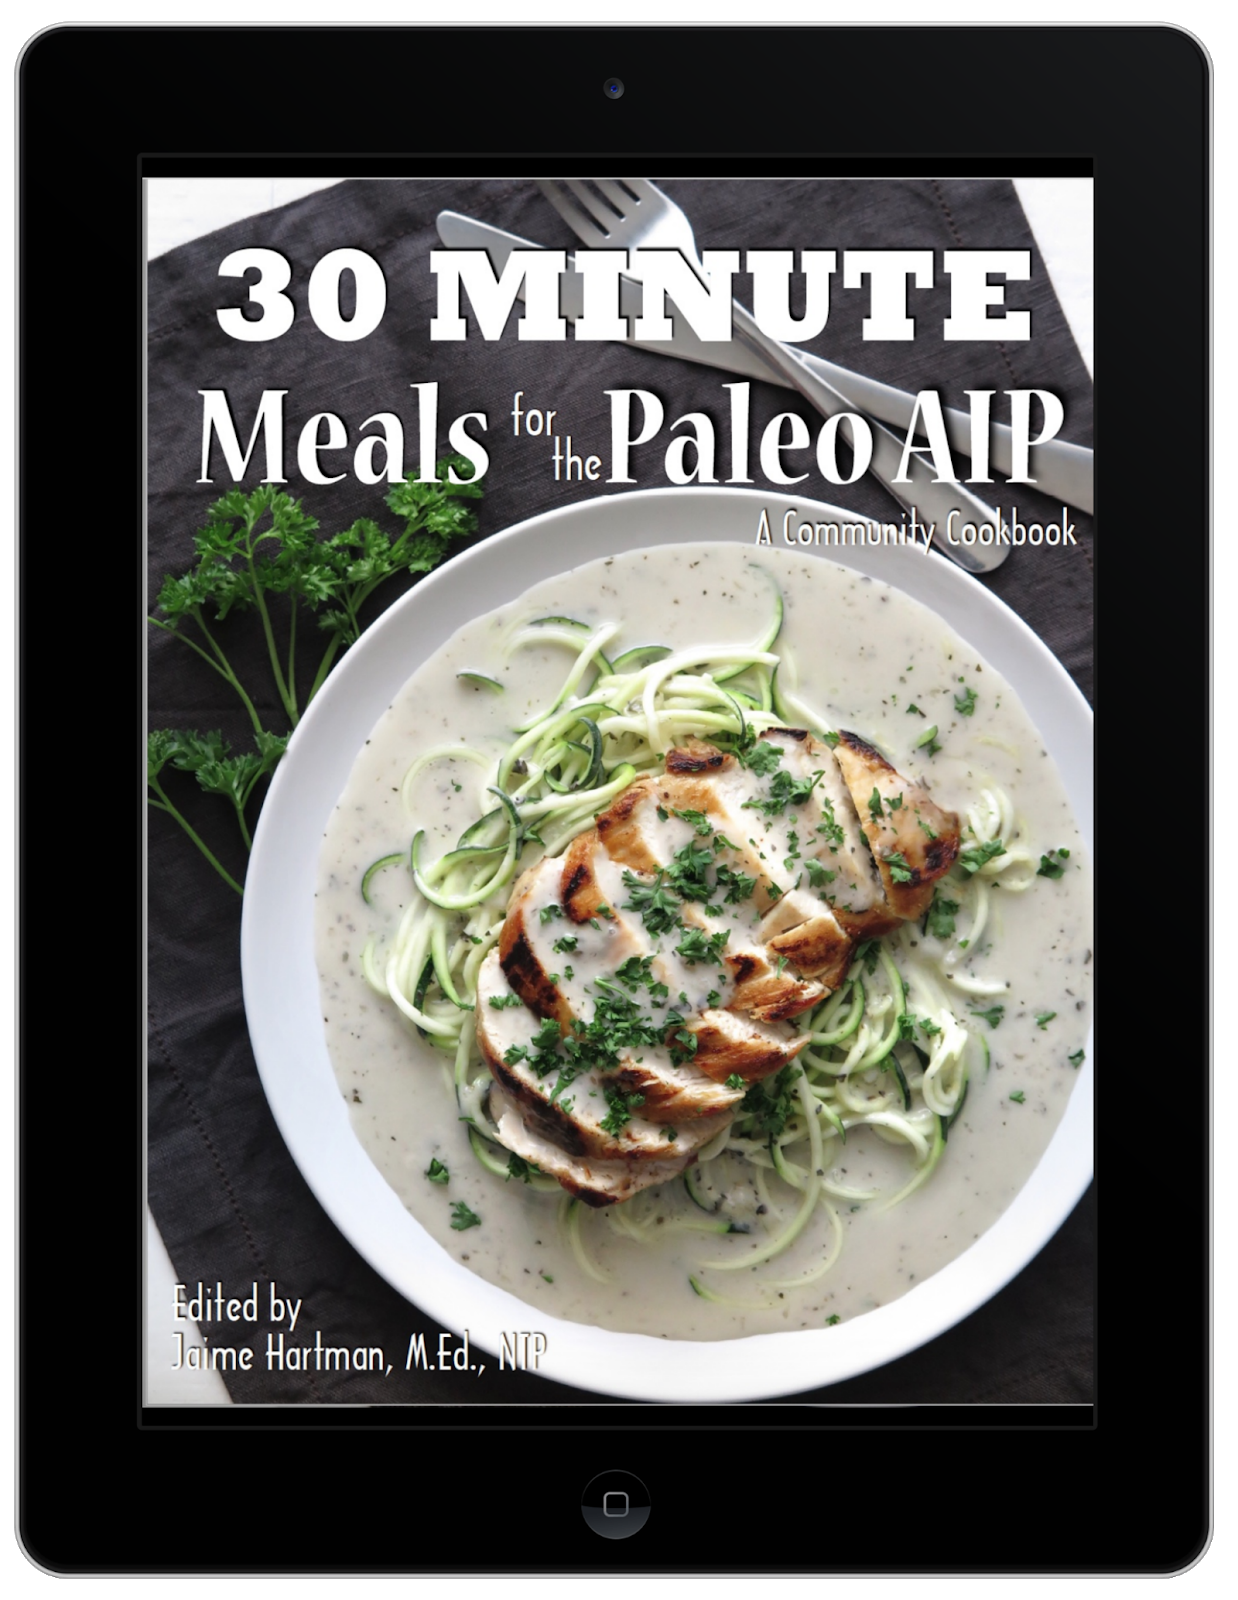 30 Minute Meals for the Paleo AIP ebook!